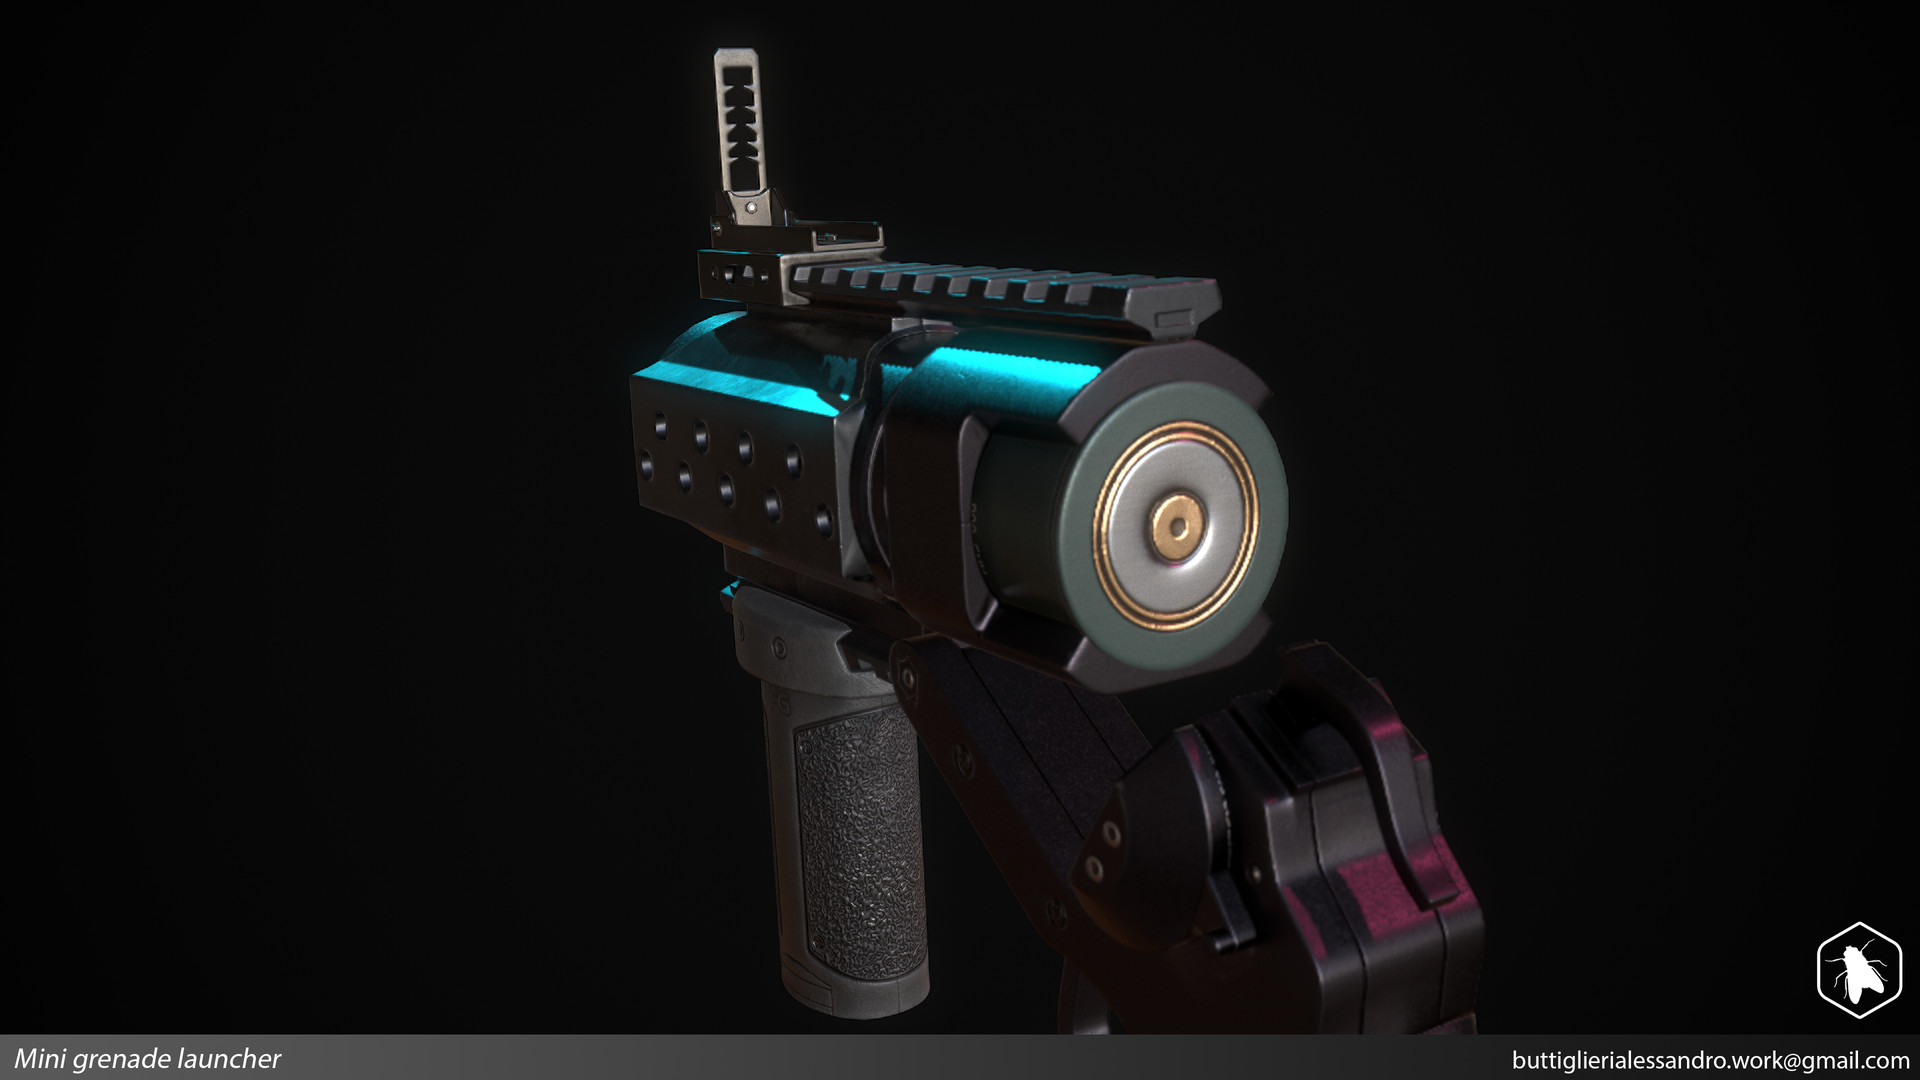 Alessandro buttiglieri mini grenade launcher final2